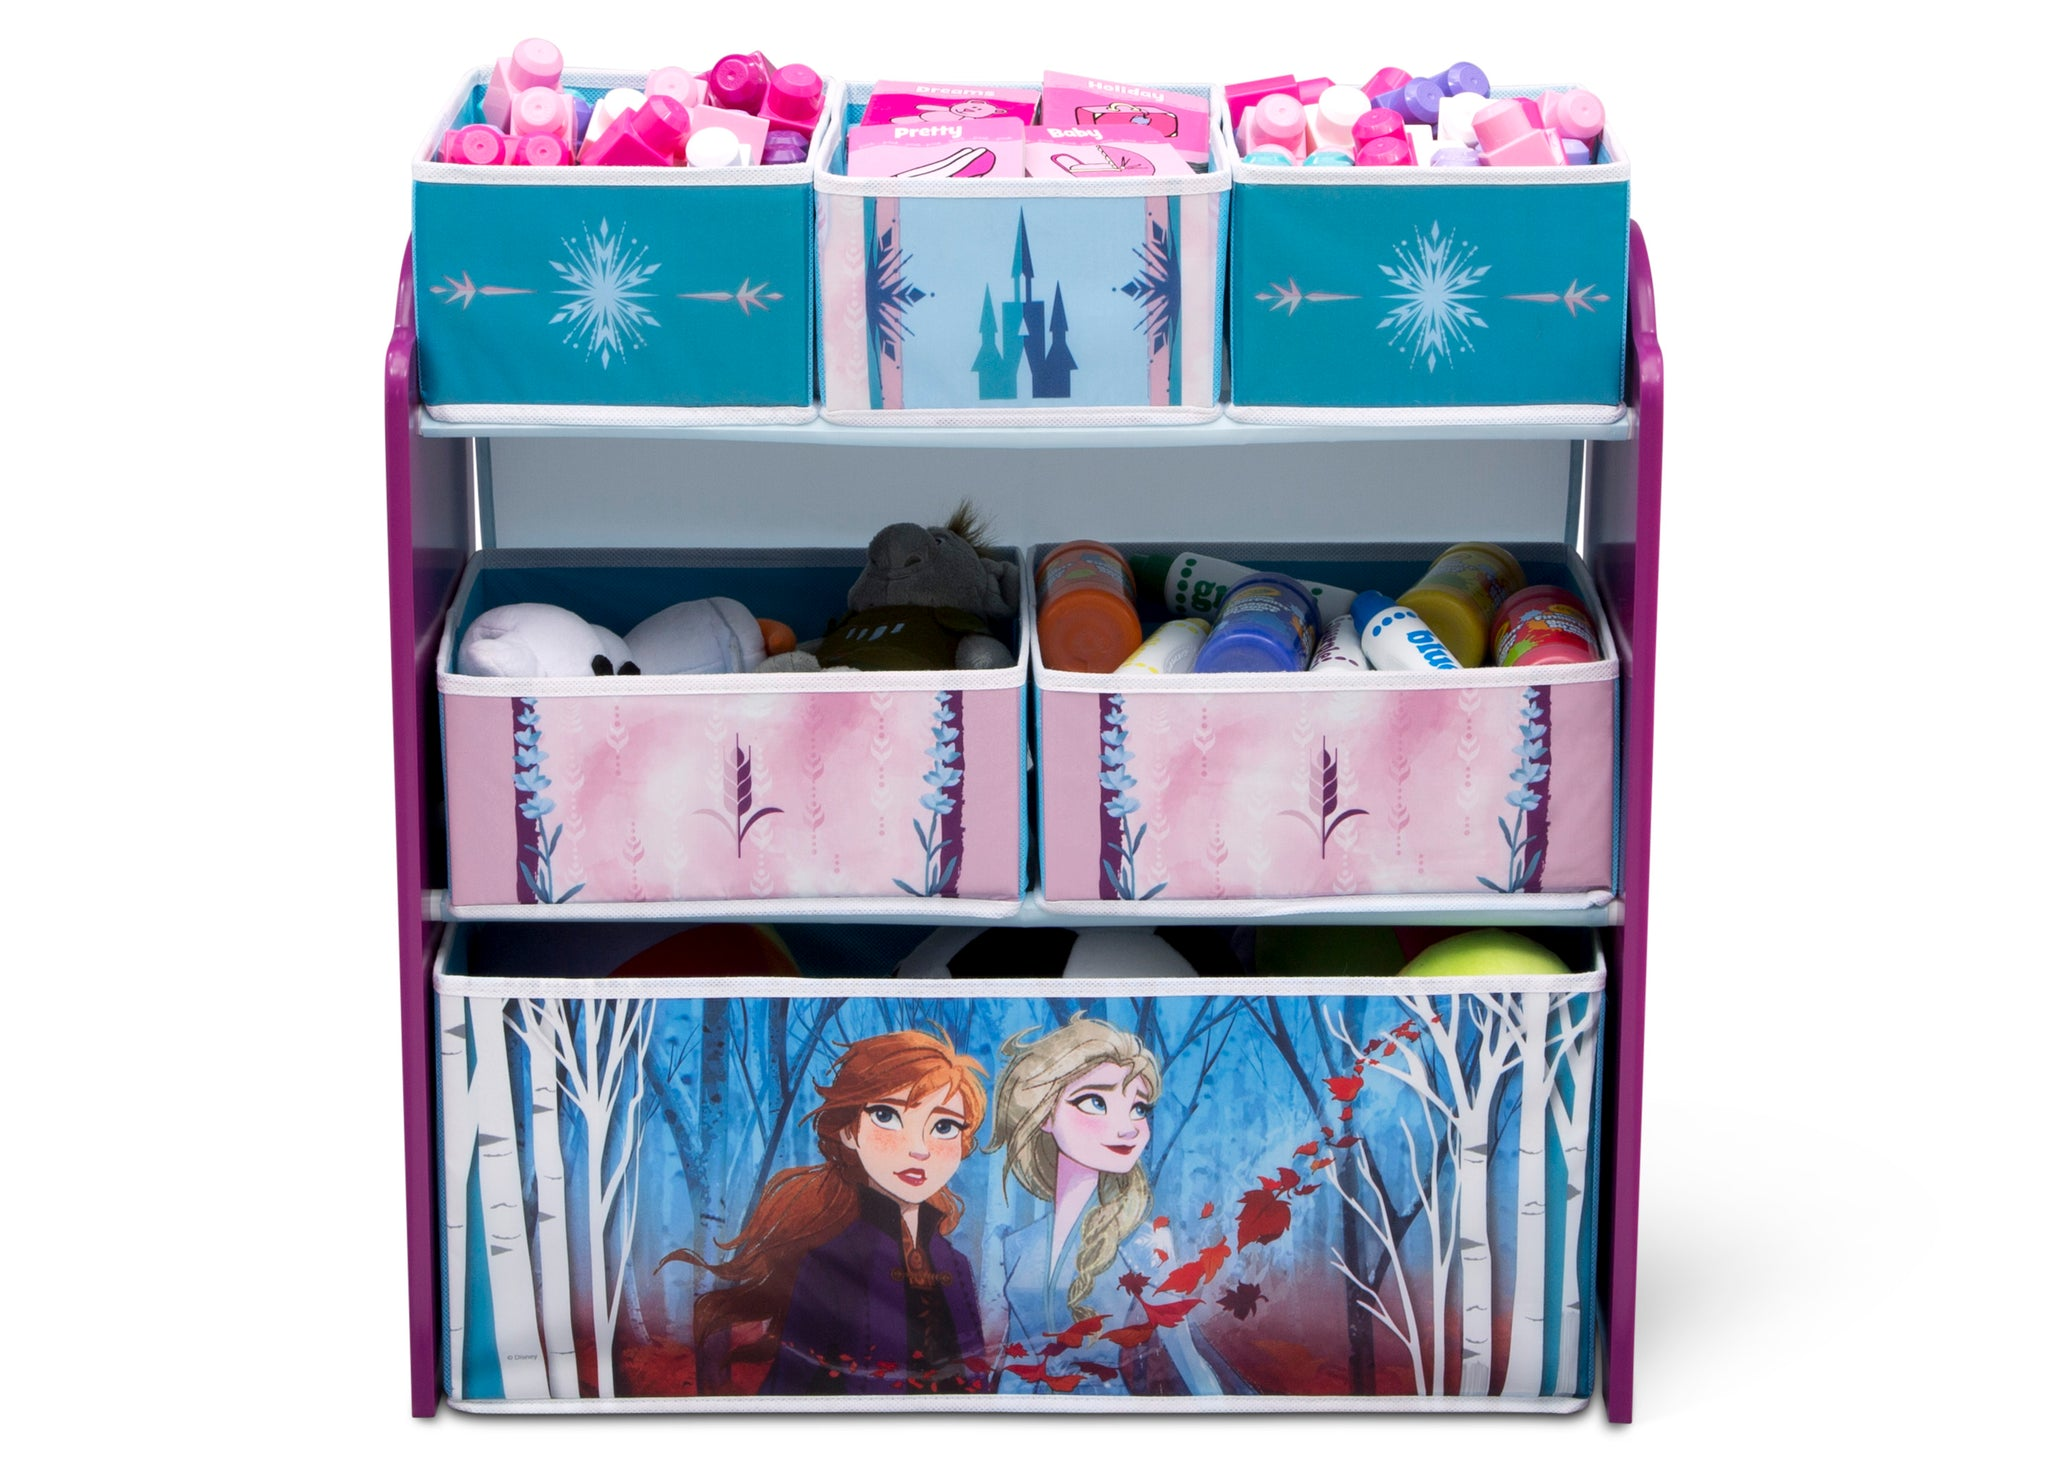 Delta Children Frozen 2 (1097) Design and Store 6 Bin Toy Organizer, Front Silo View